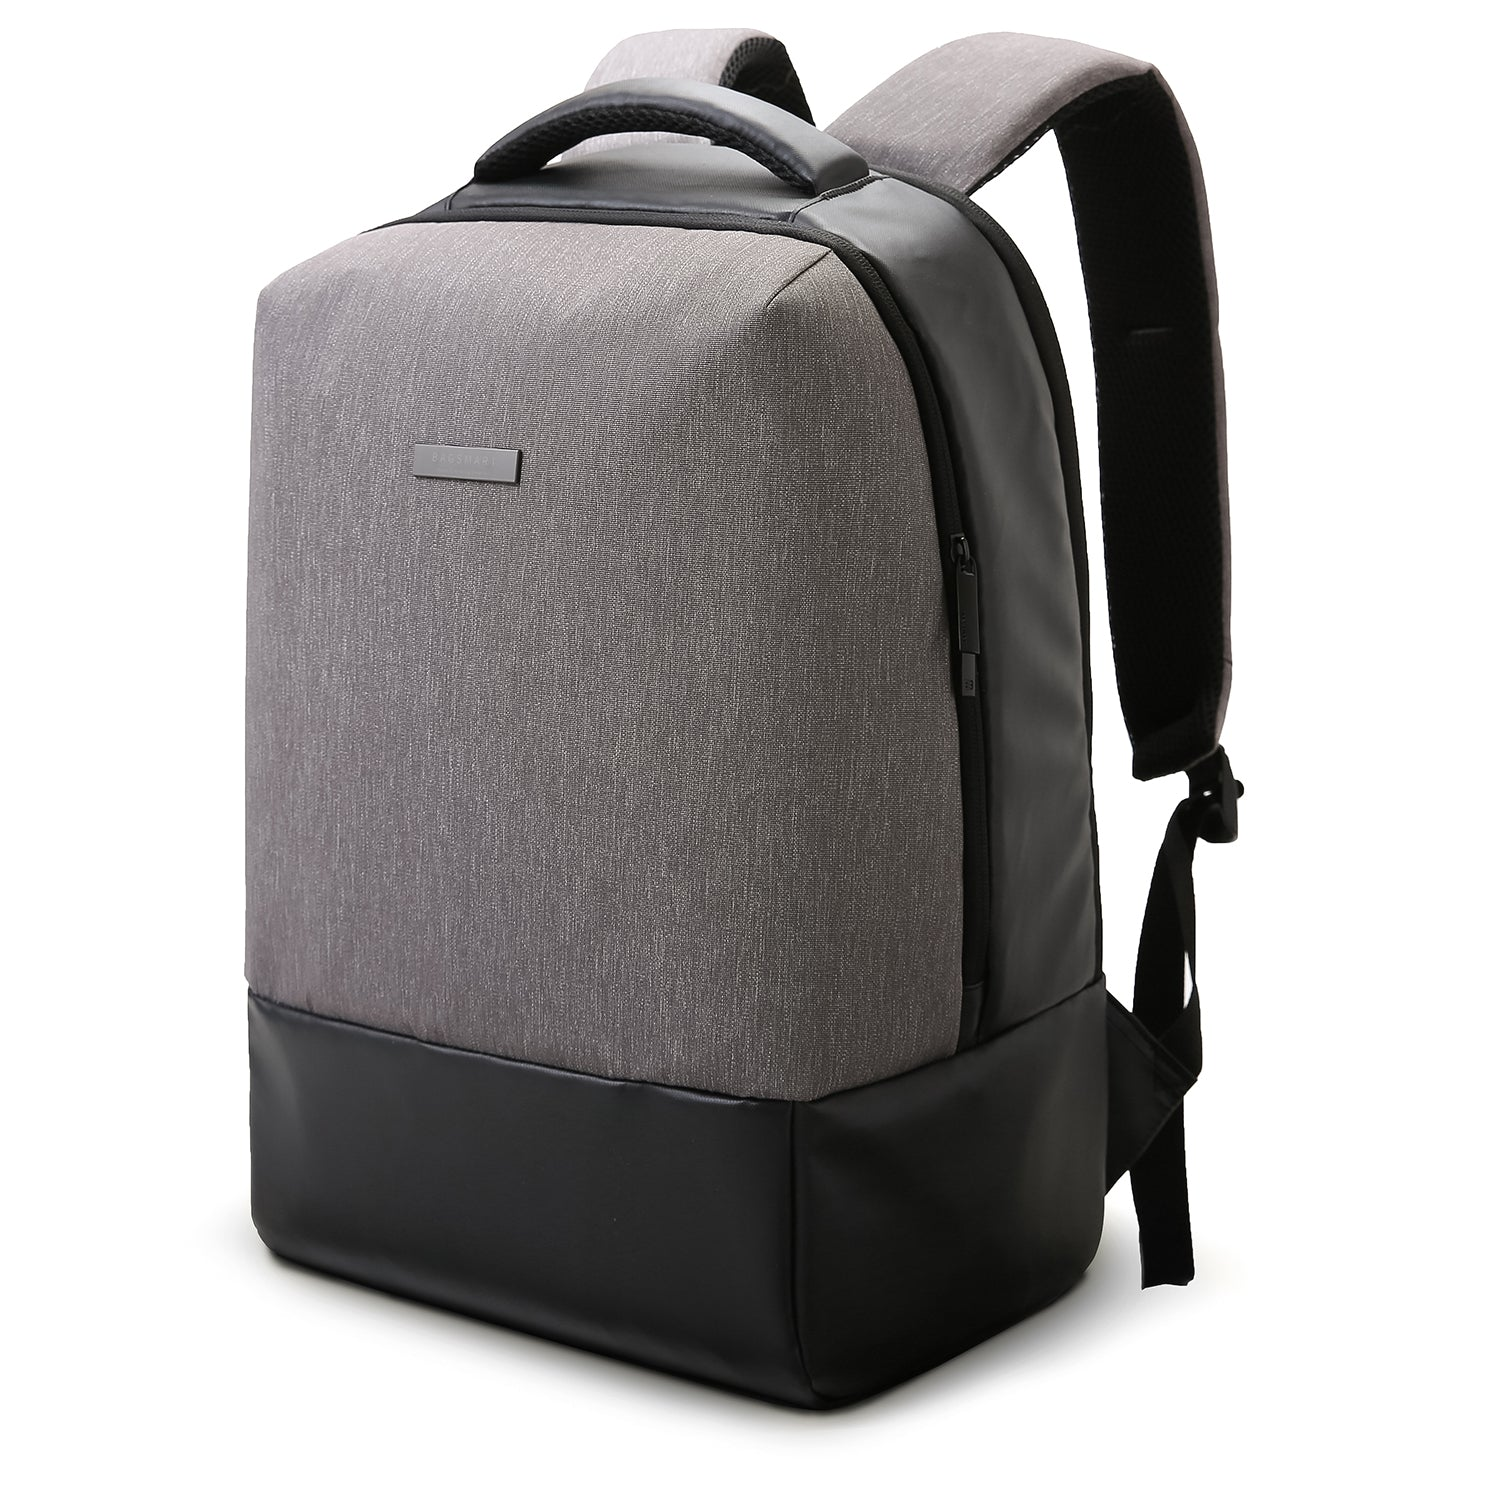 33ed307f46 Travel Laptop Backpack Business Slim Durable Computer Bag with Water  Resistant College School Bag for Women